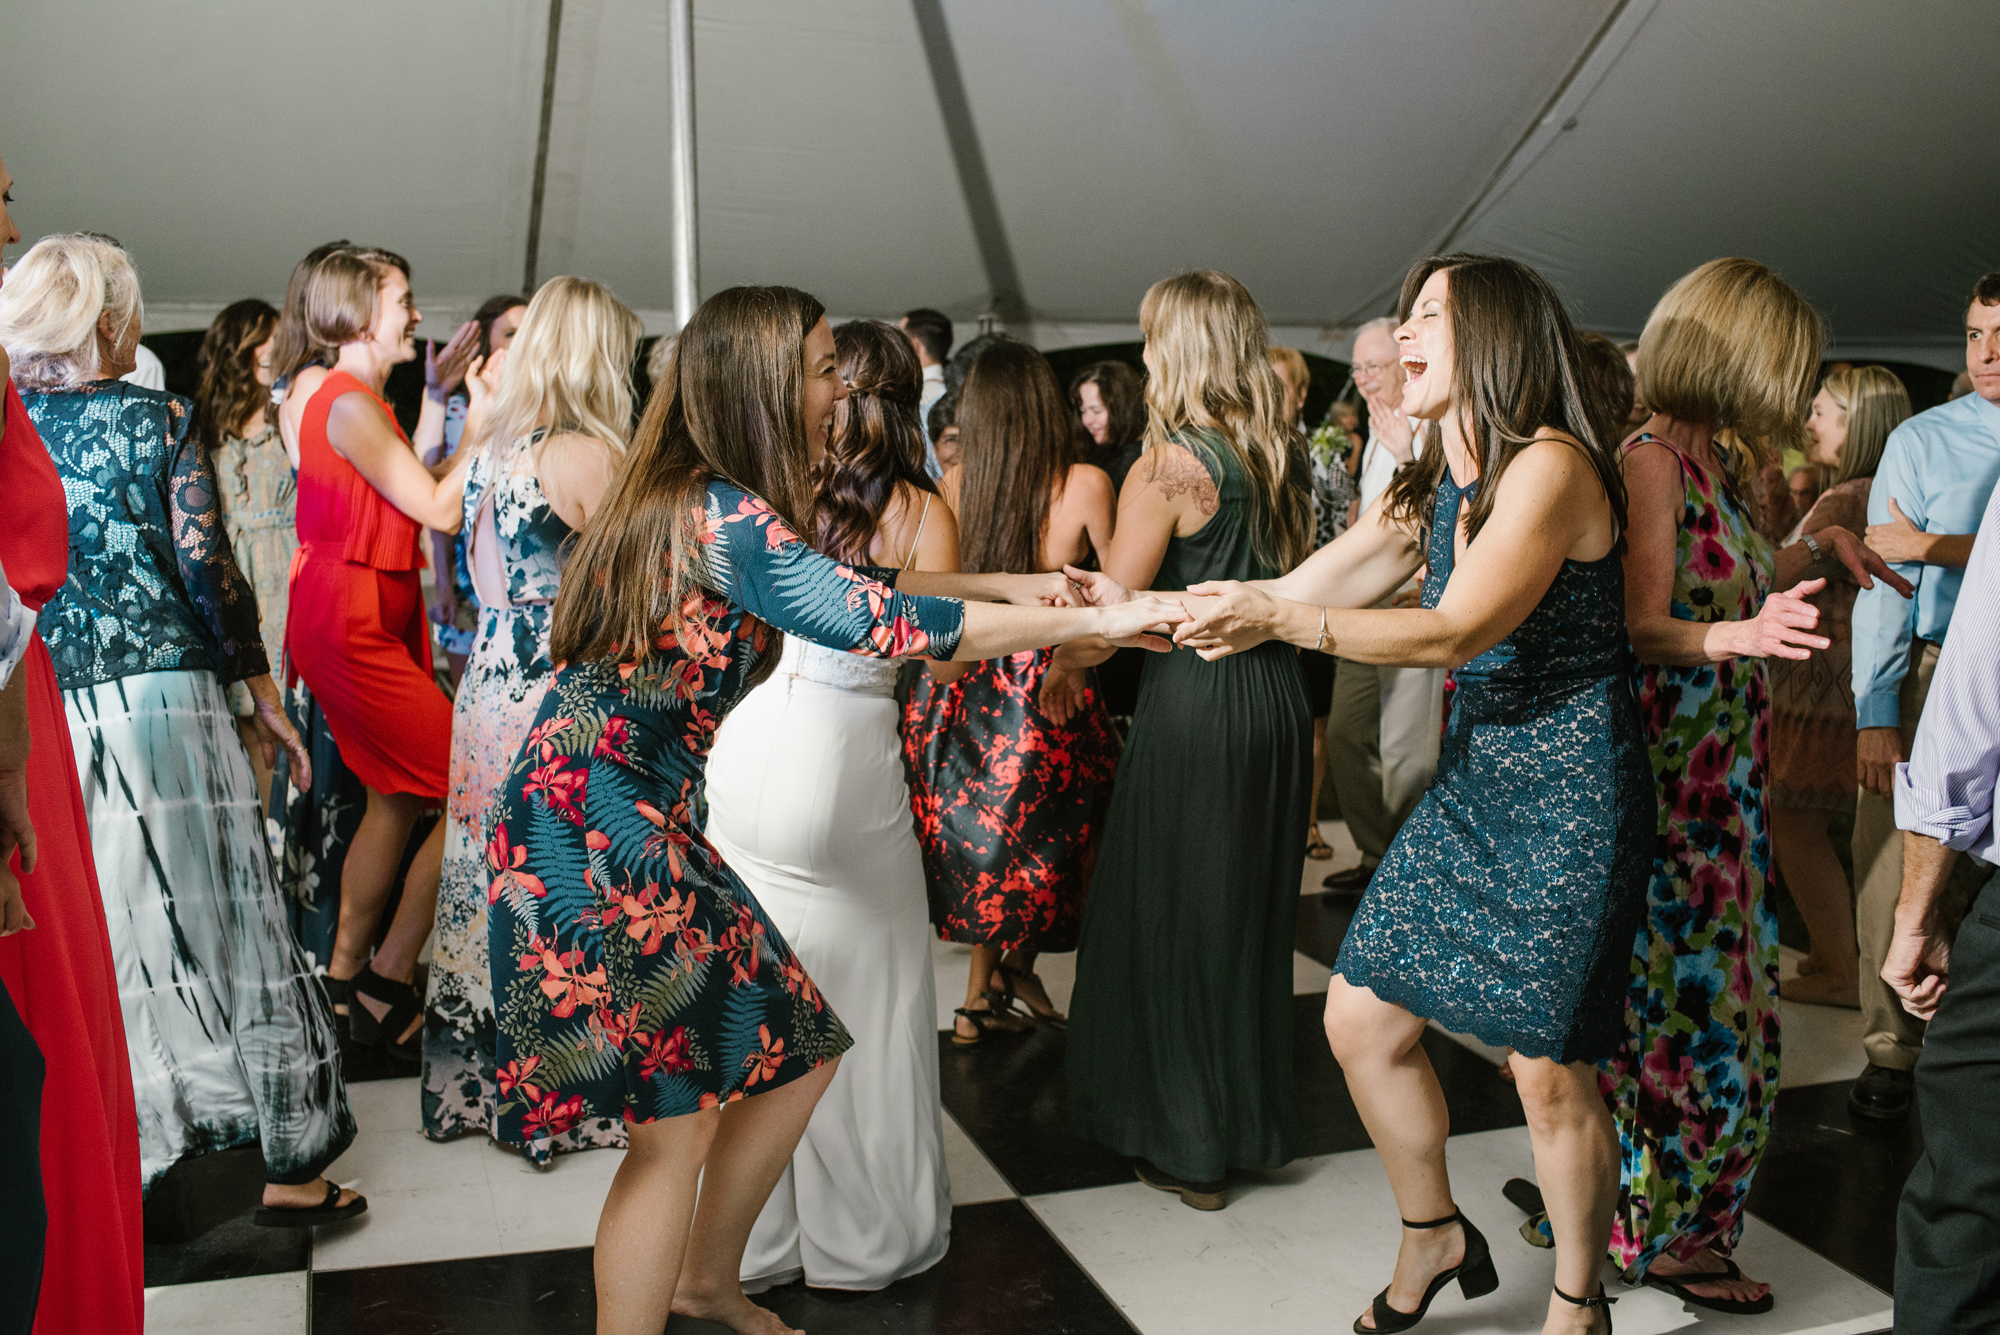 quincy-michigan-wedding-dancing-pictures-sydney-marie (15).jpg